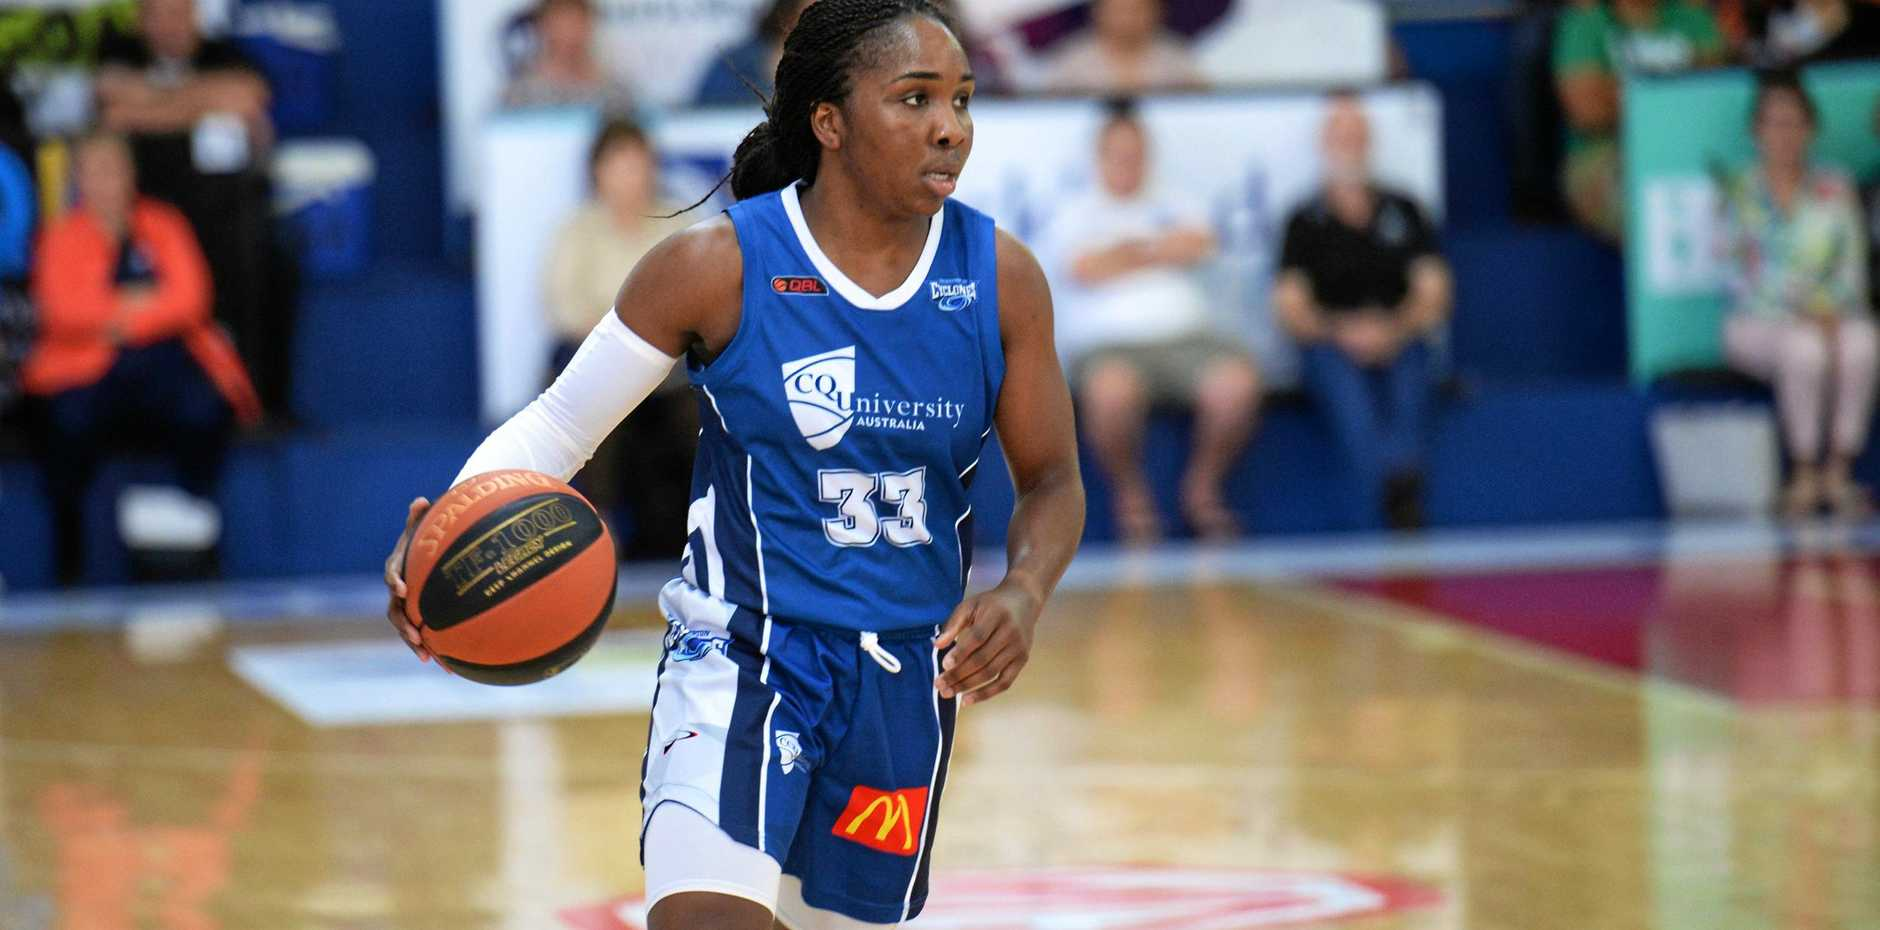 Basketball: Cyclones Jessica Thomas said the team is preparing to take down ladder leaders, Brisbane Capitals, this weekend.